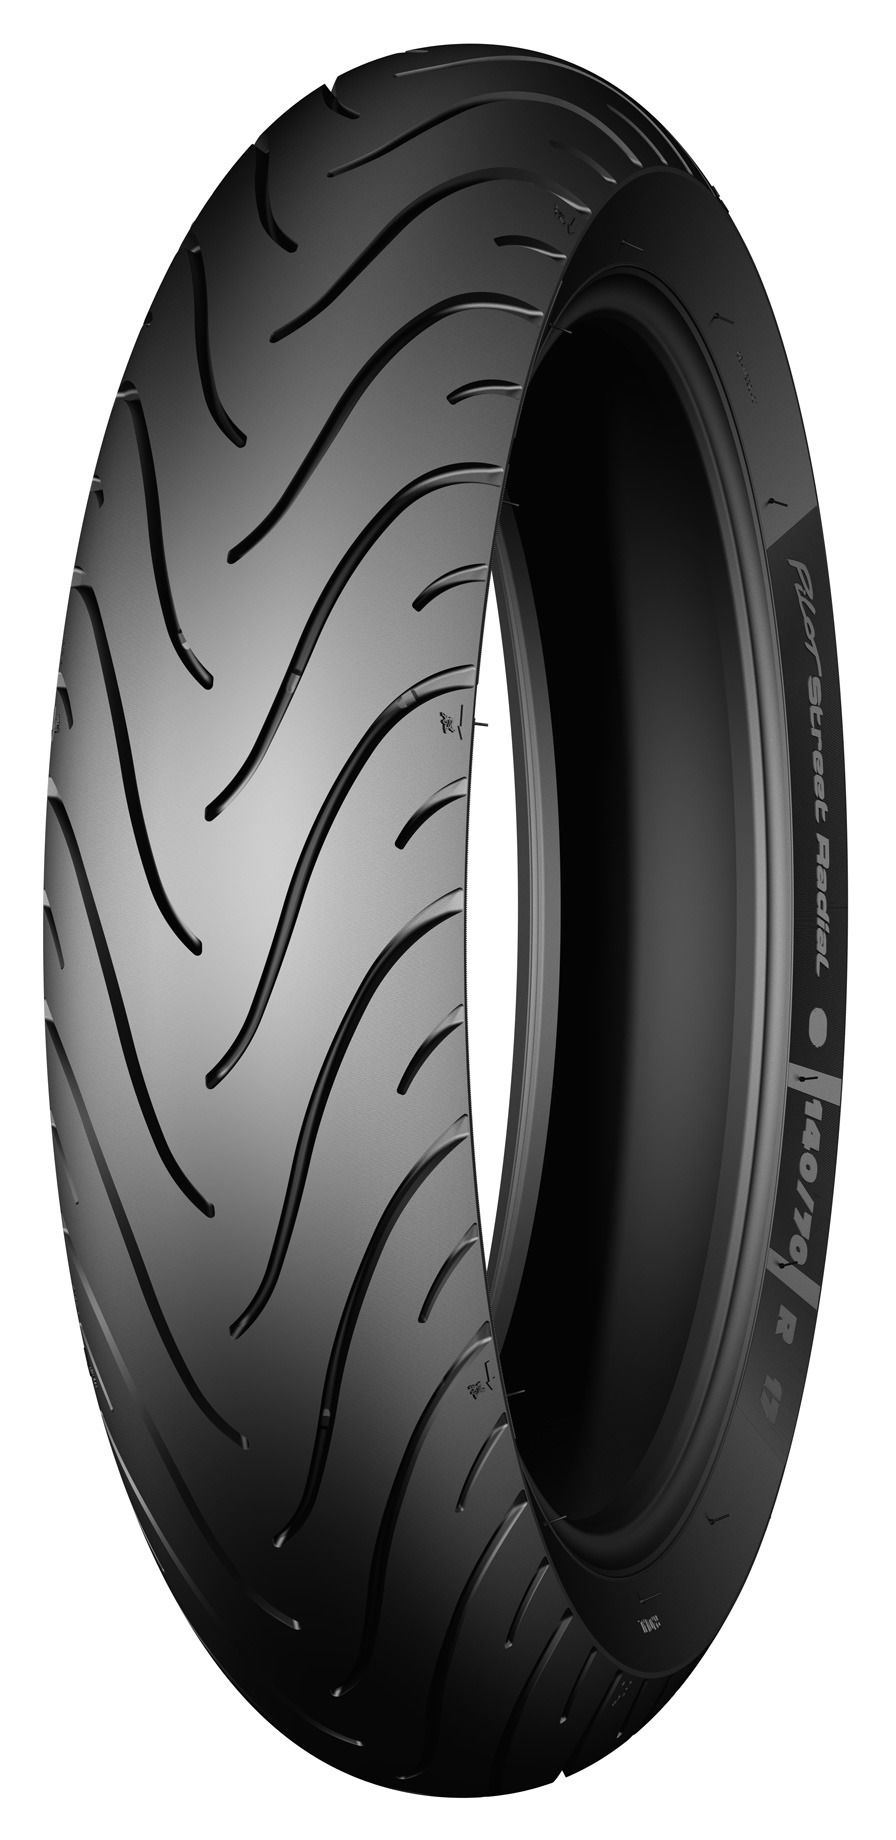 michelin pilot road 2 front tires cycle gear. Black Bedroom Furniture Sets. Home Design Ideas